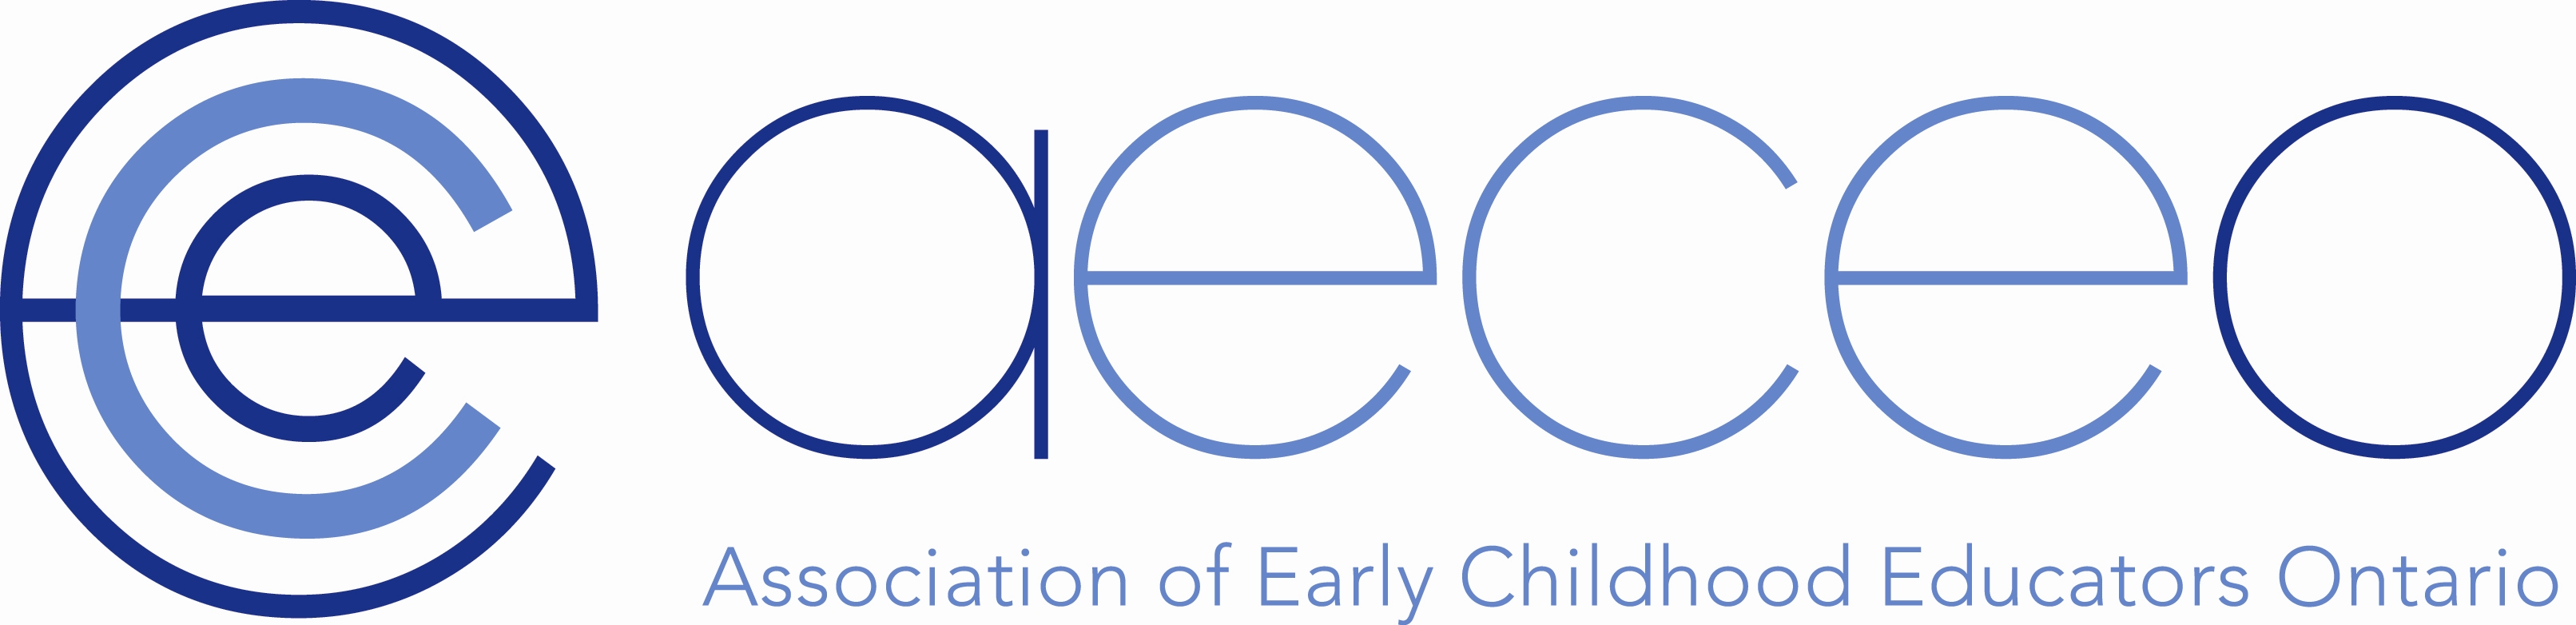 how to become an early childhood educator in ontario